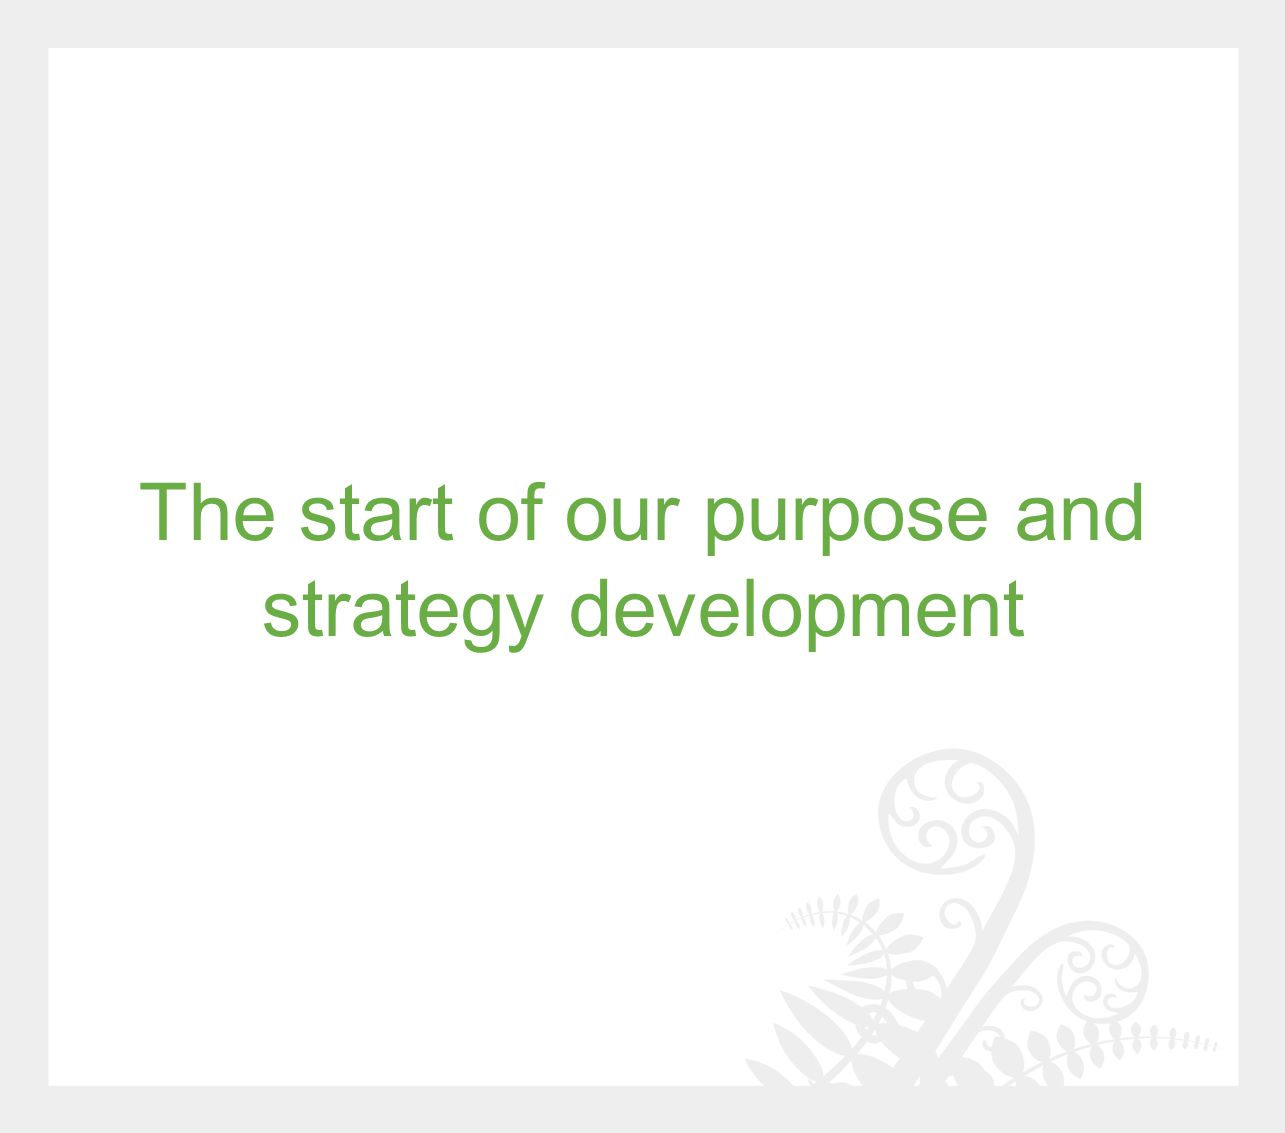 The start of our purpose and strategy development